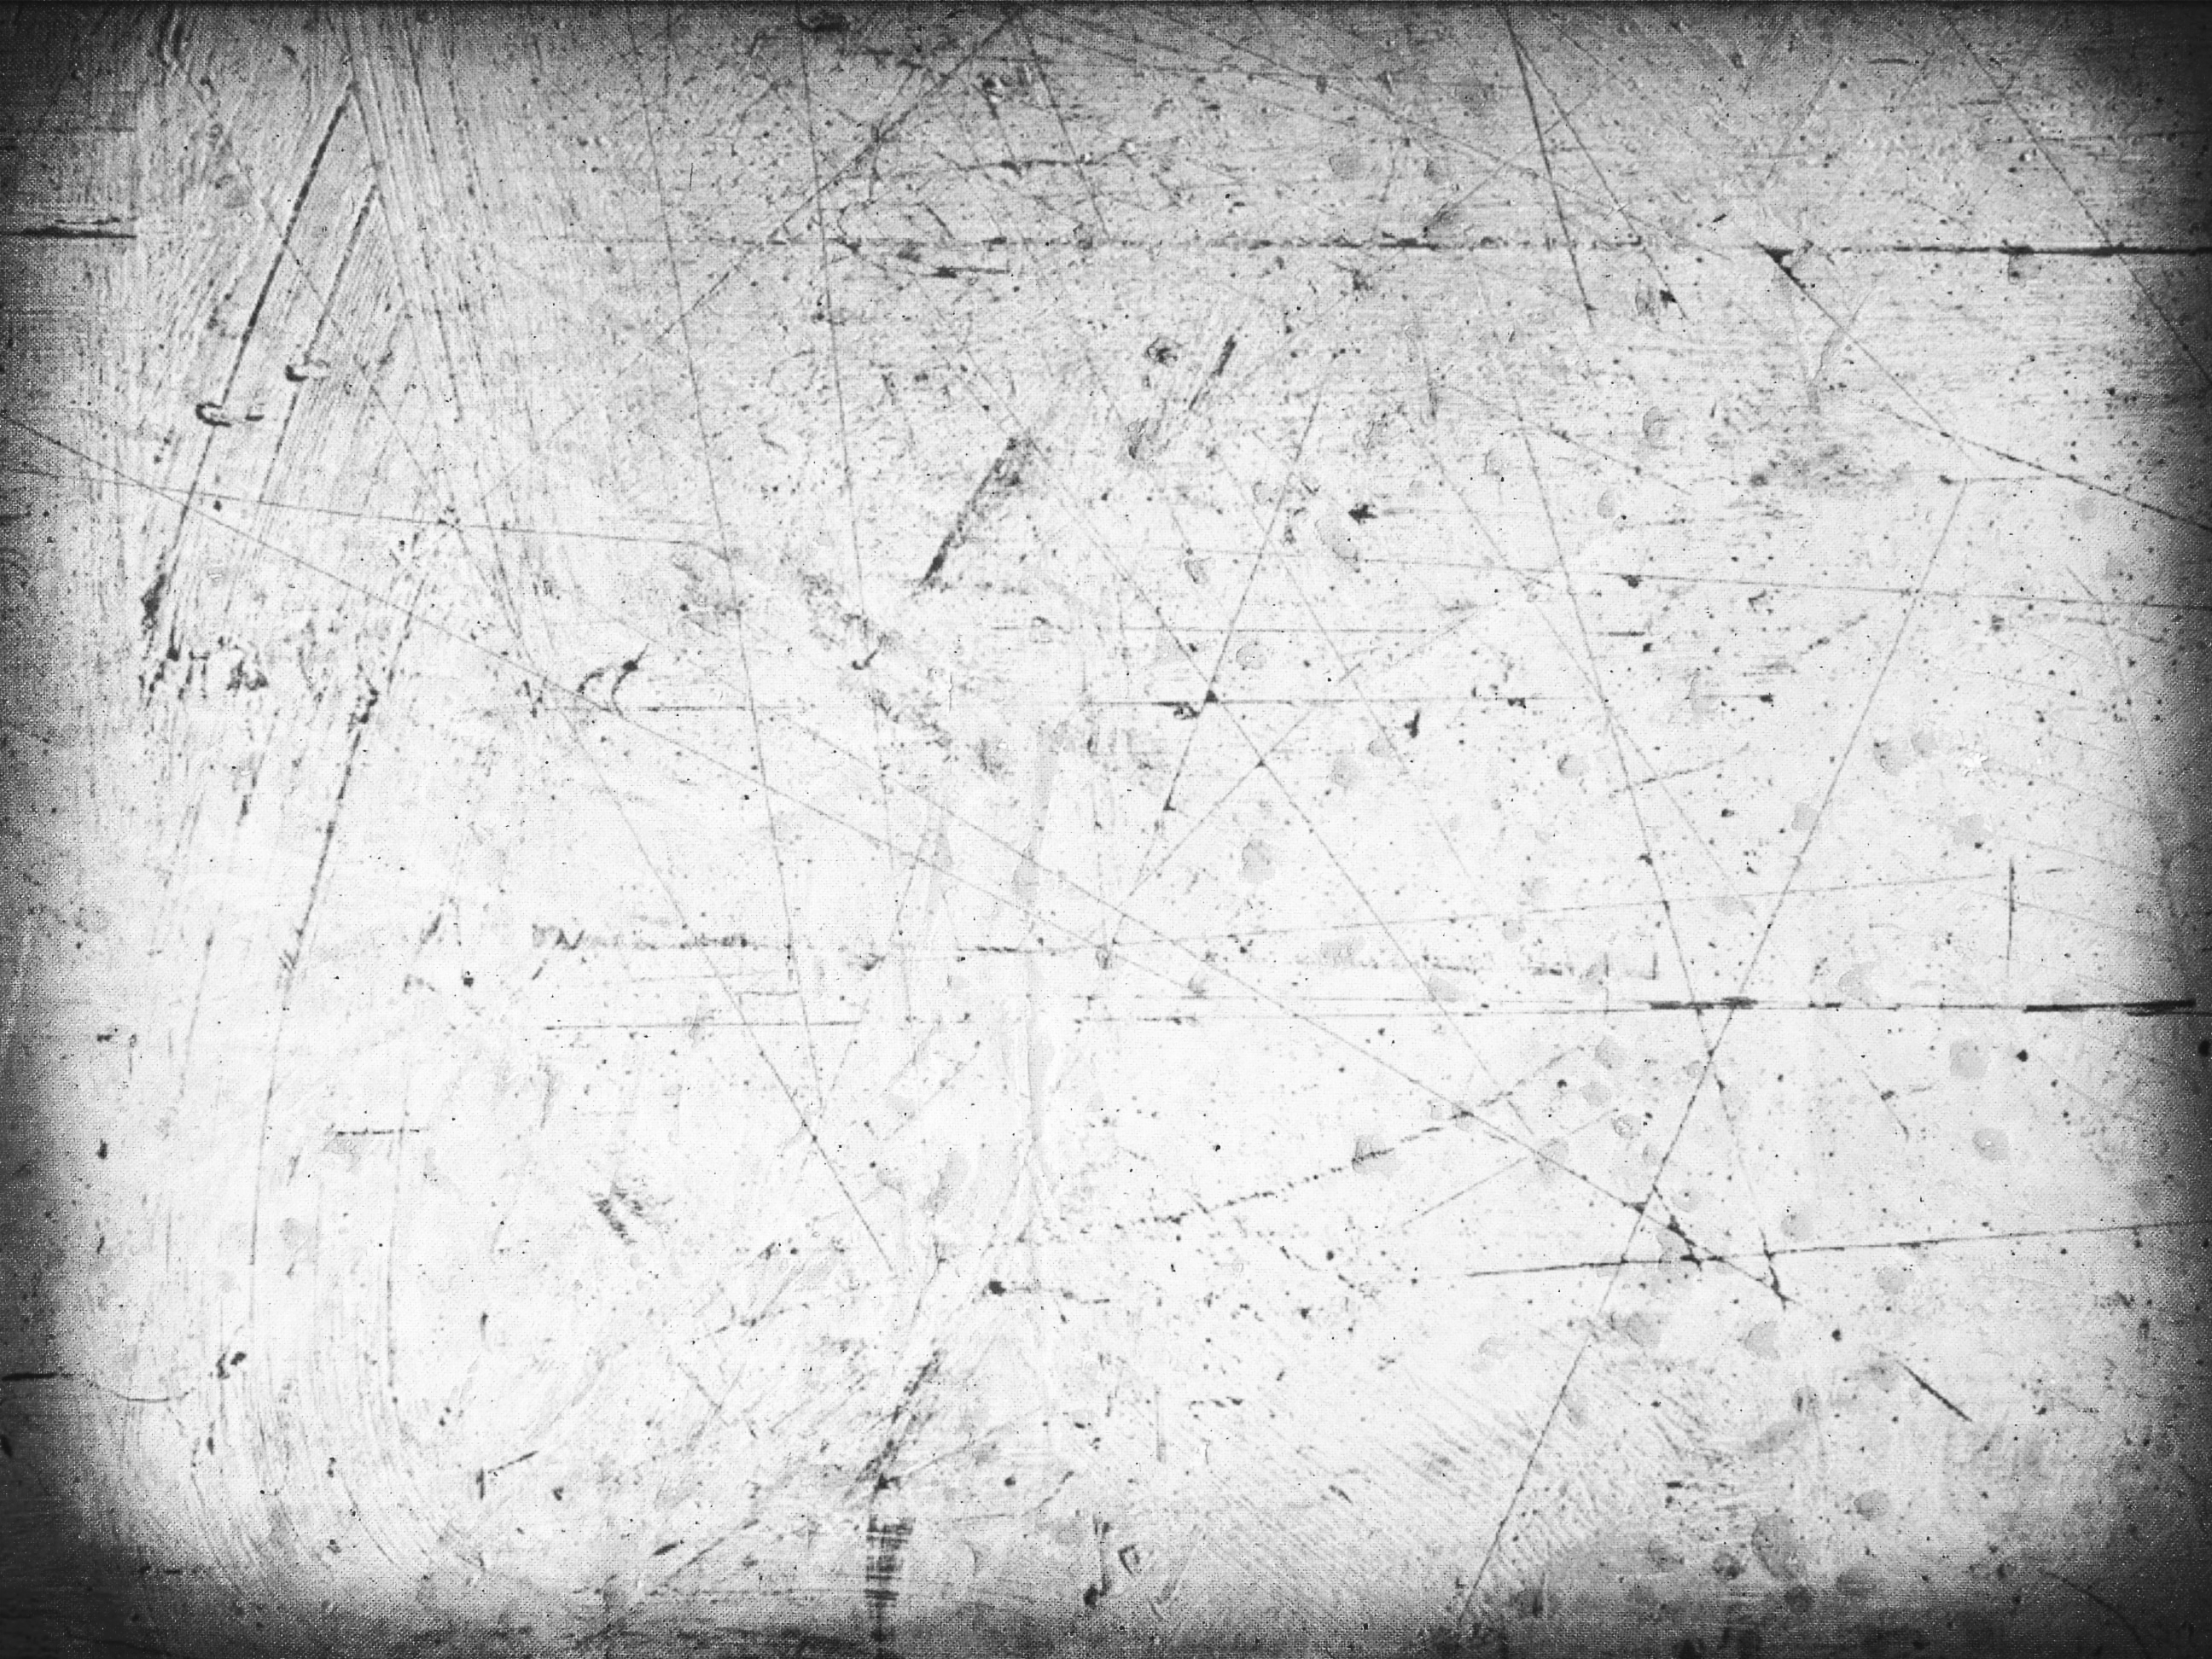 Scratched film texture handmade texture available for